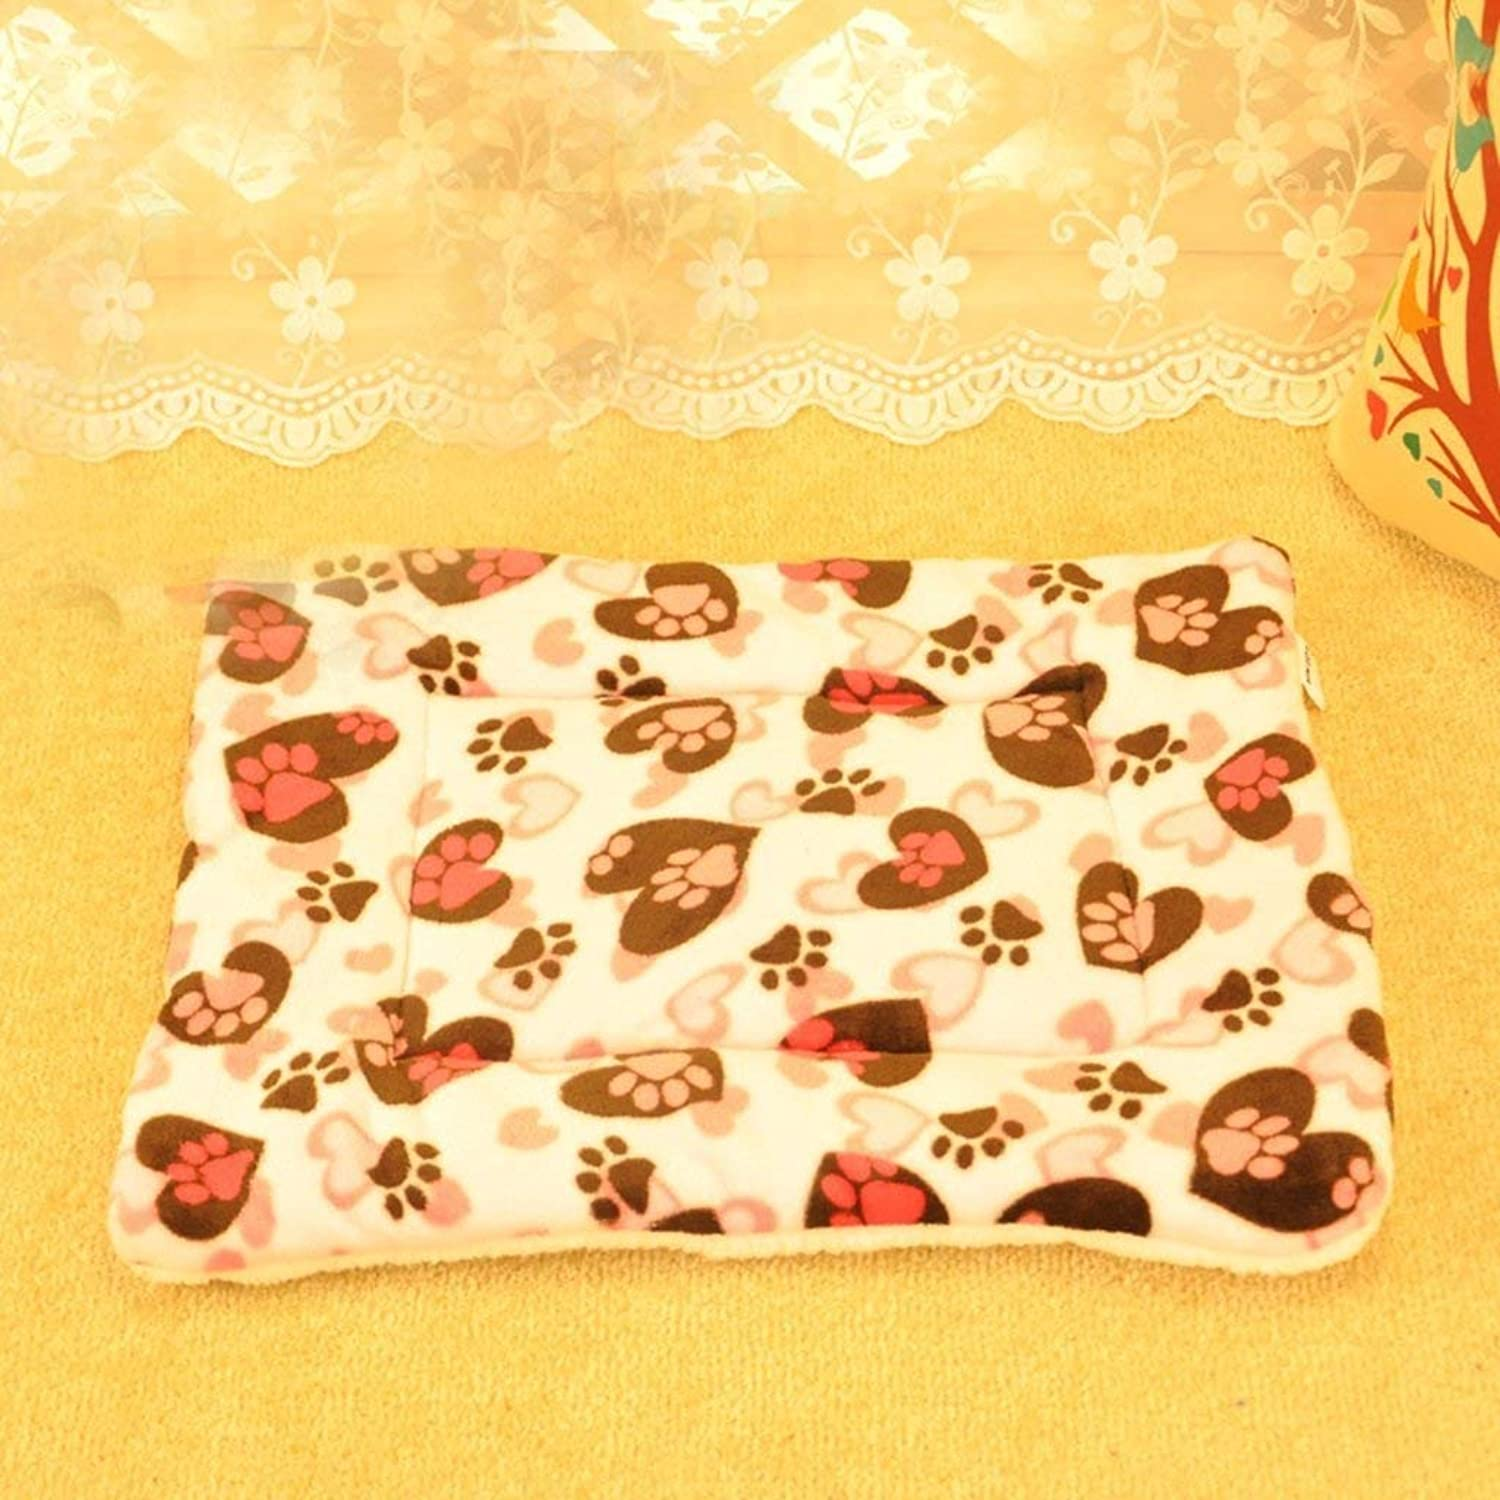 CFHJN HOME Dog Cushion Cat Cushion Blanket Pad for Pets(color   Pink) Pet Bed Blanket